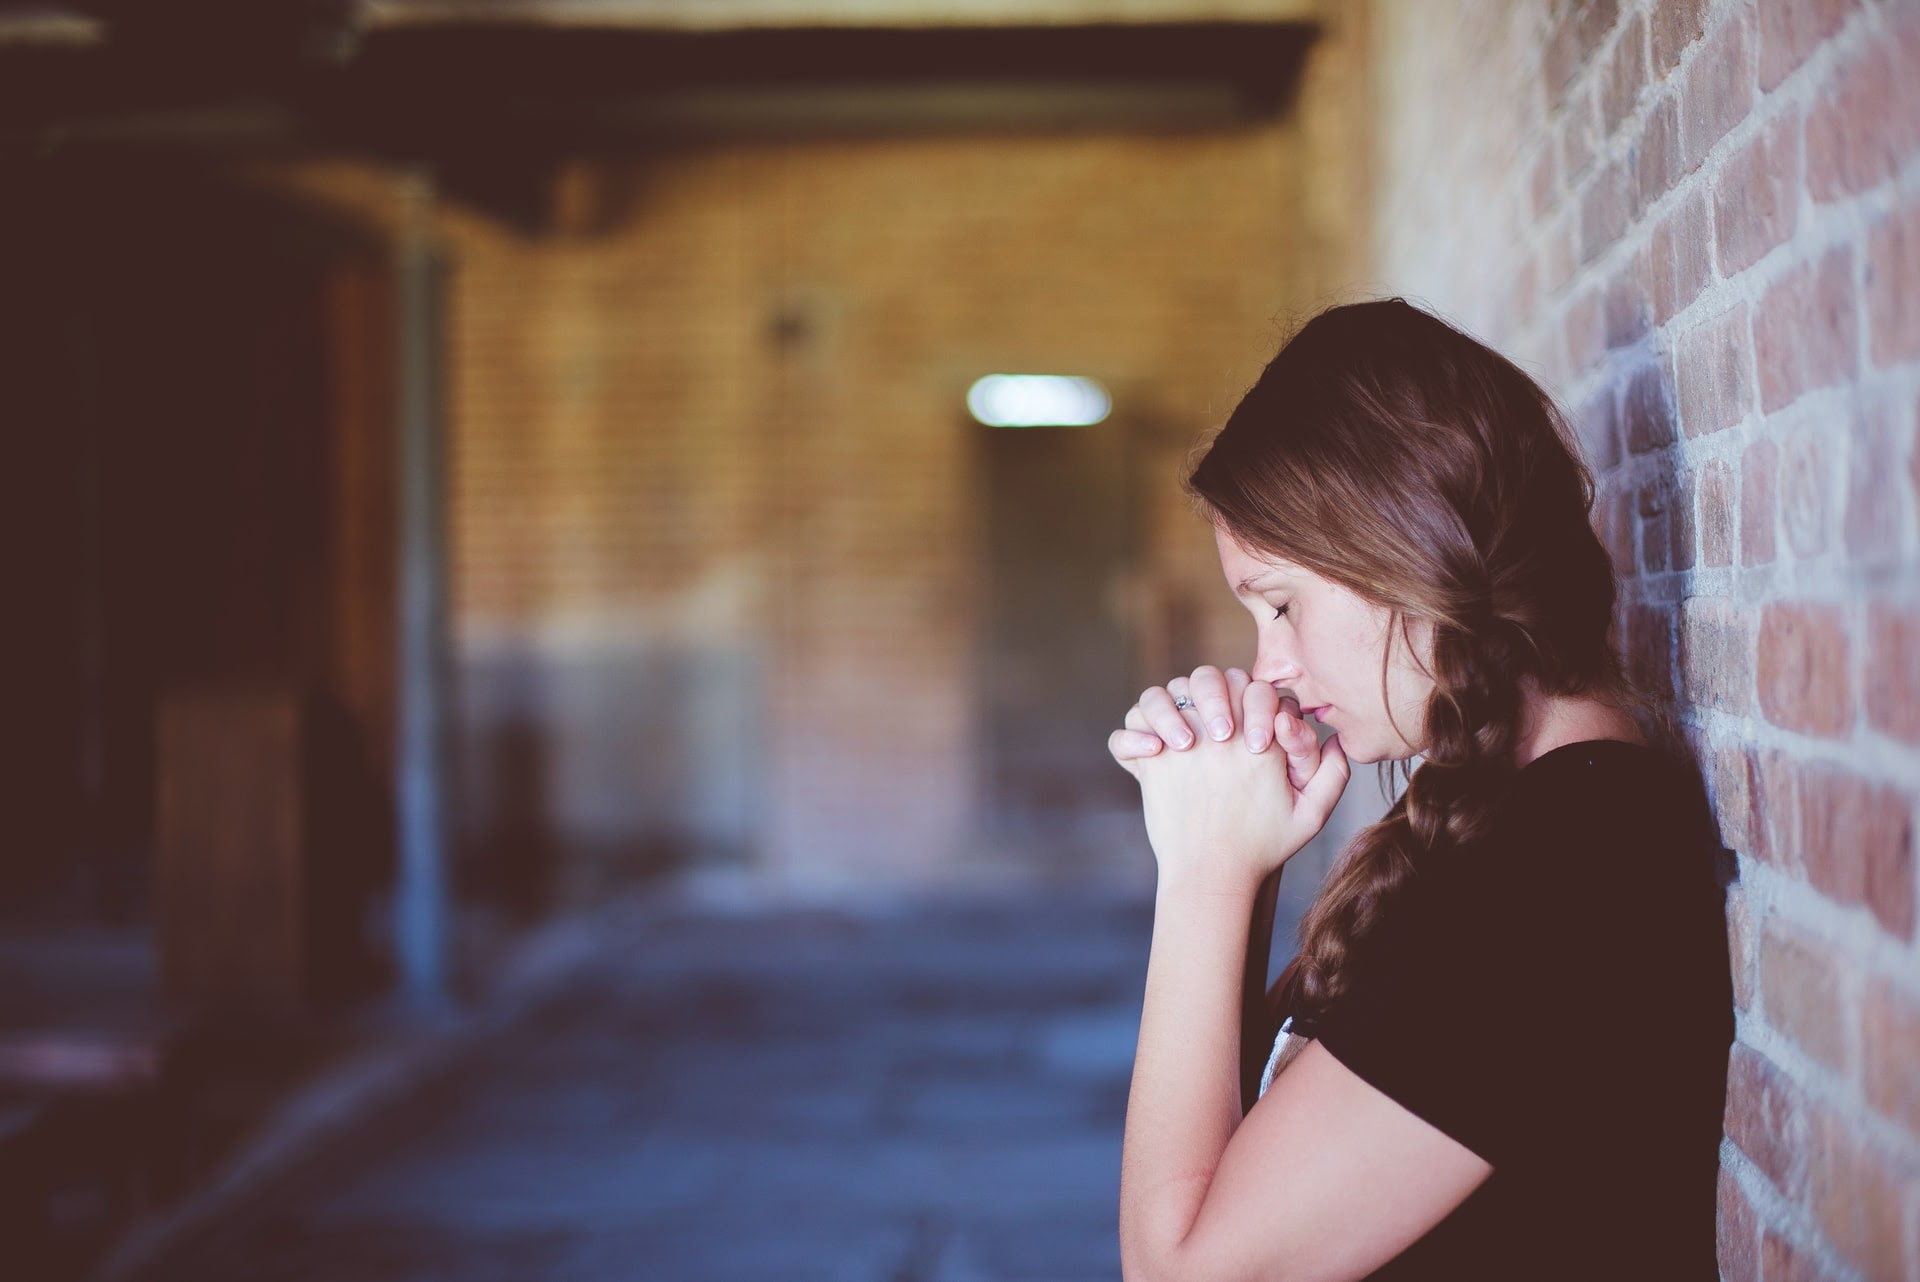 a woman leaning against a wall and praying